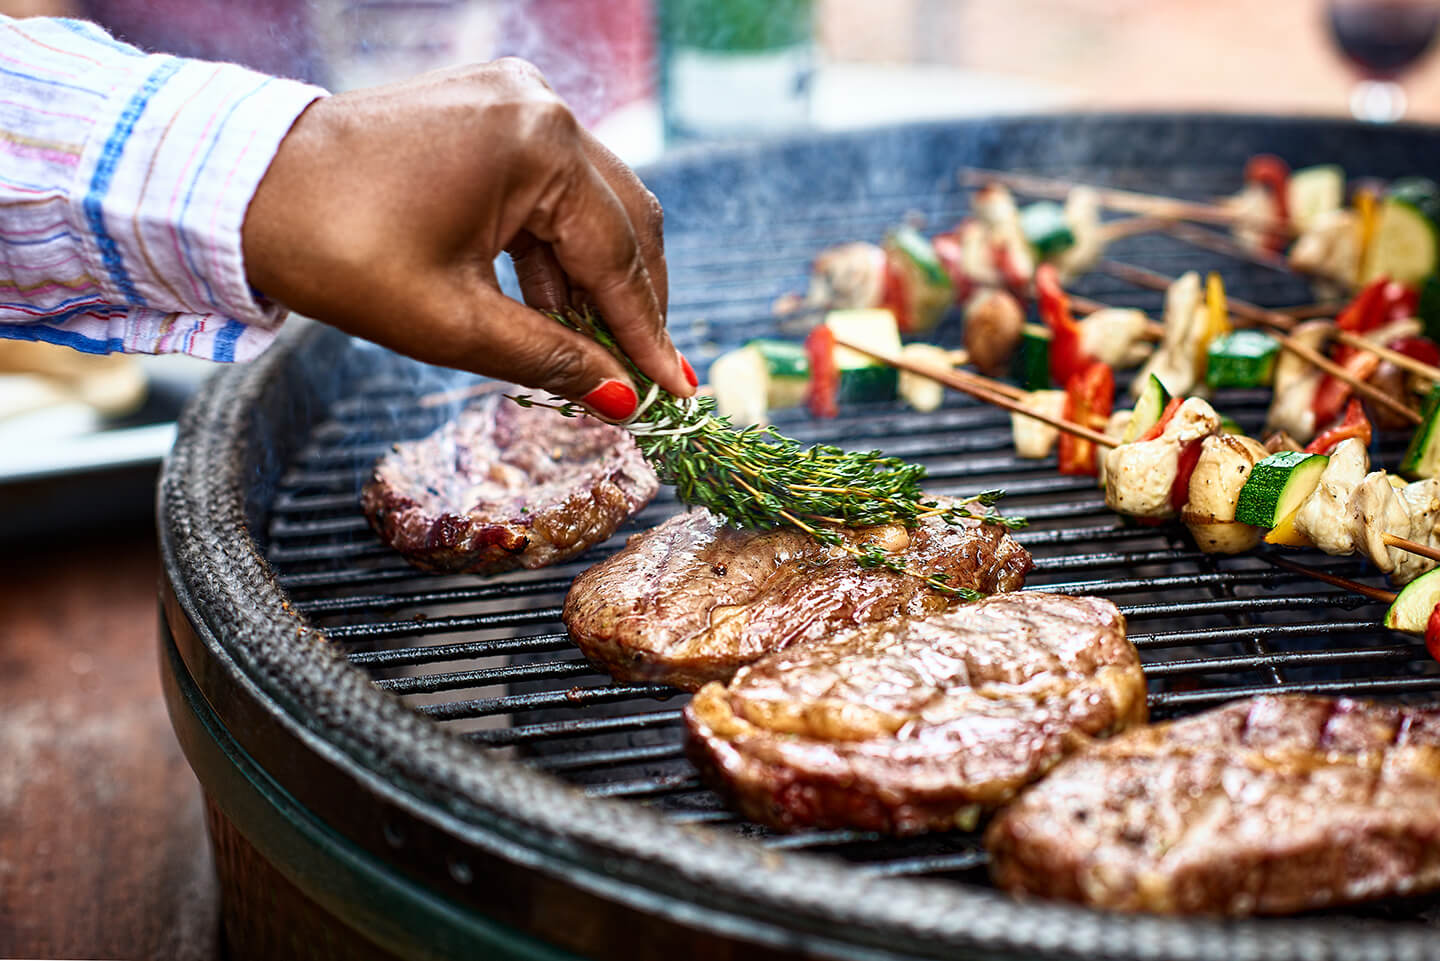 A hand basting grilled steaks in olive oil with a tied bunch of thyme.